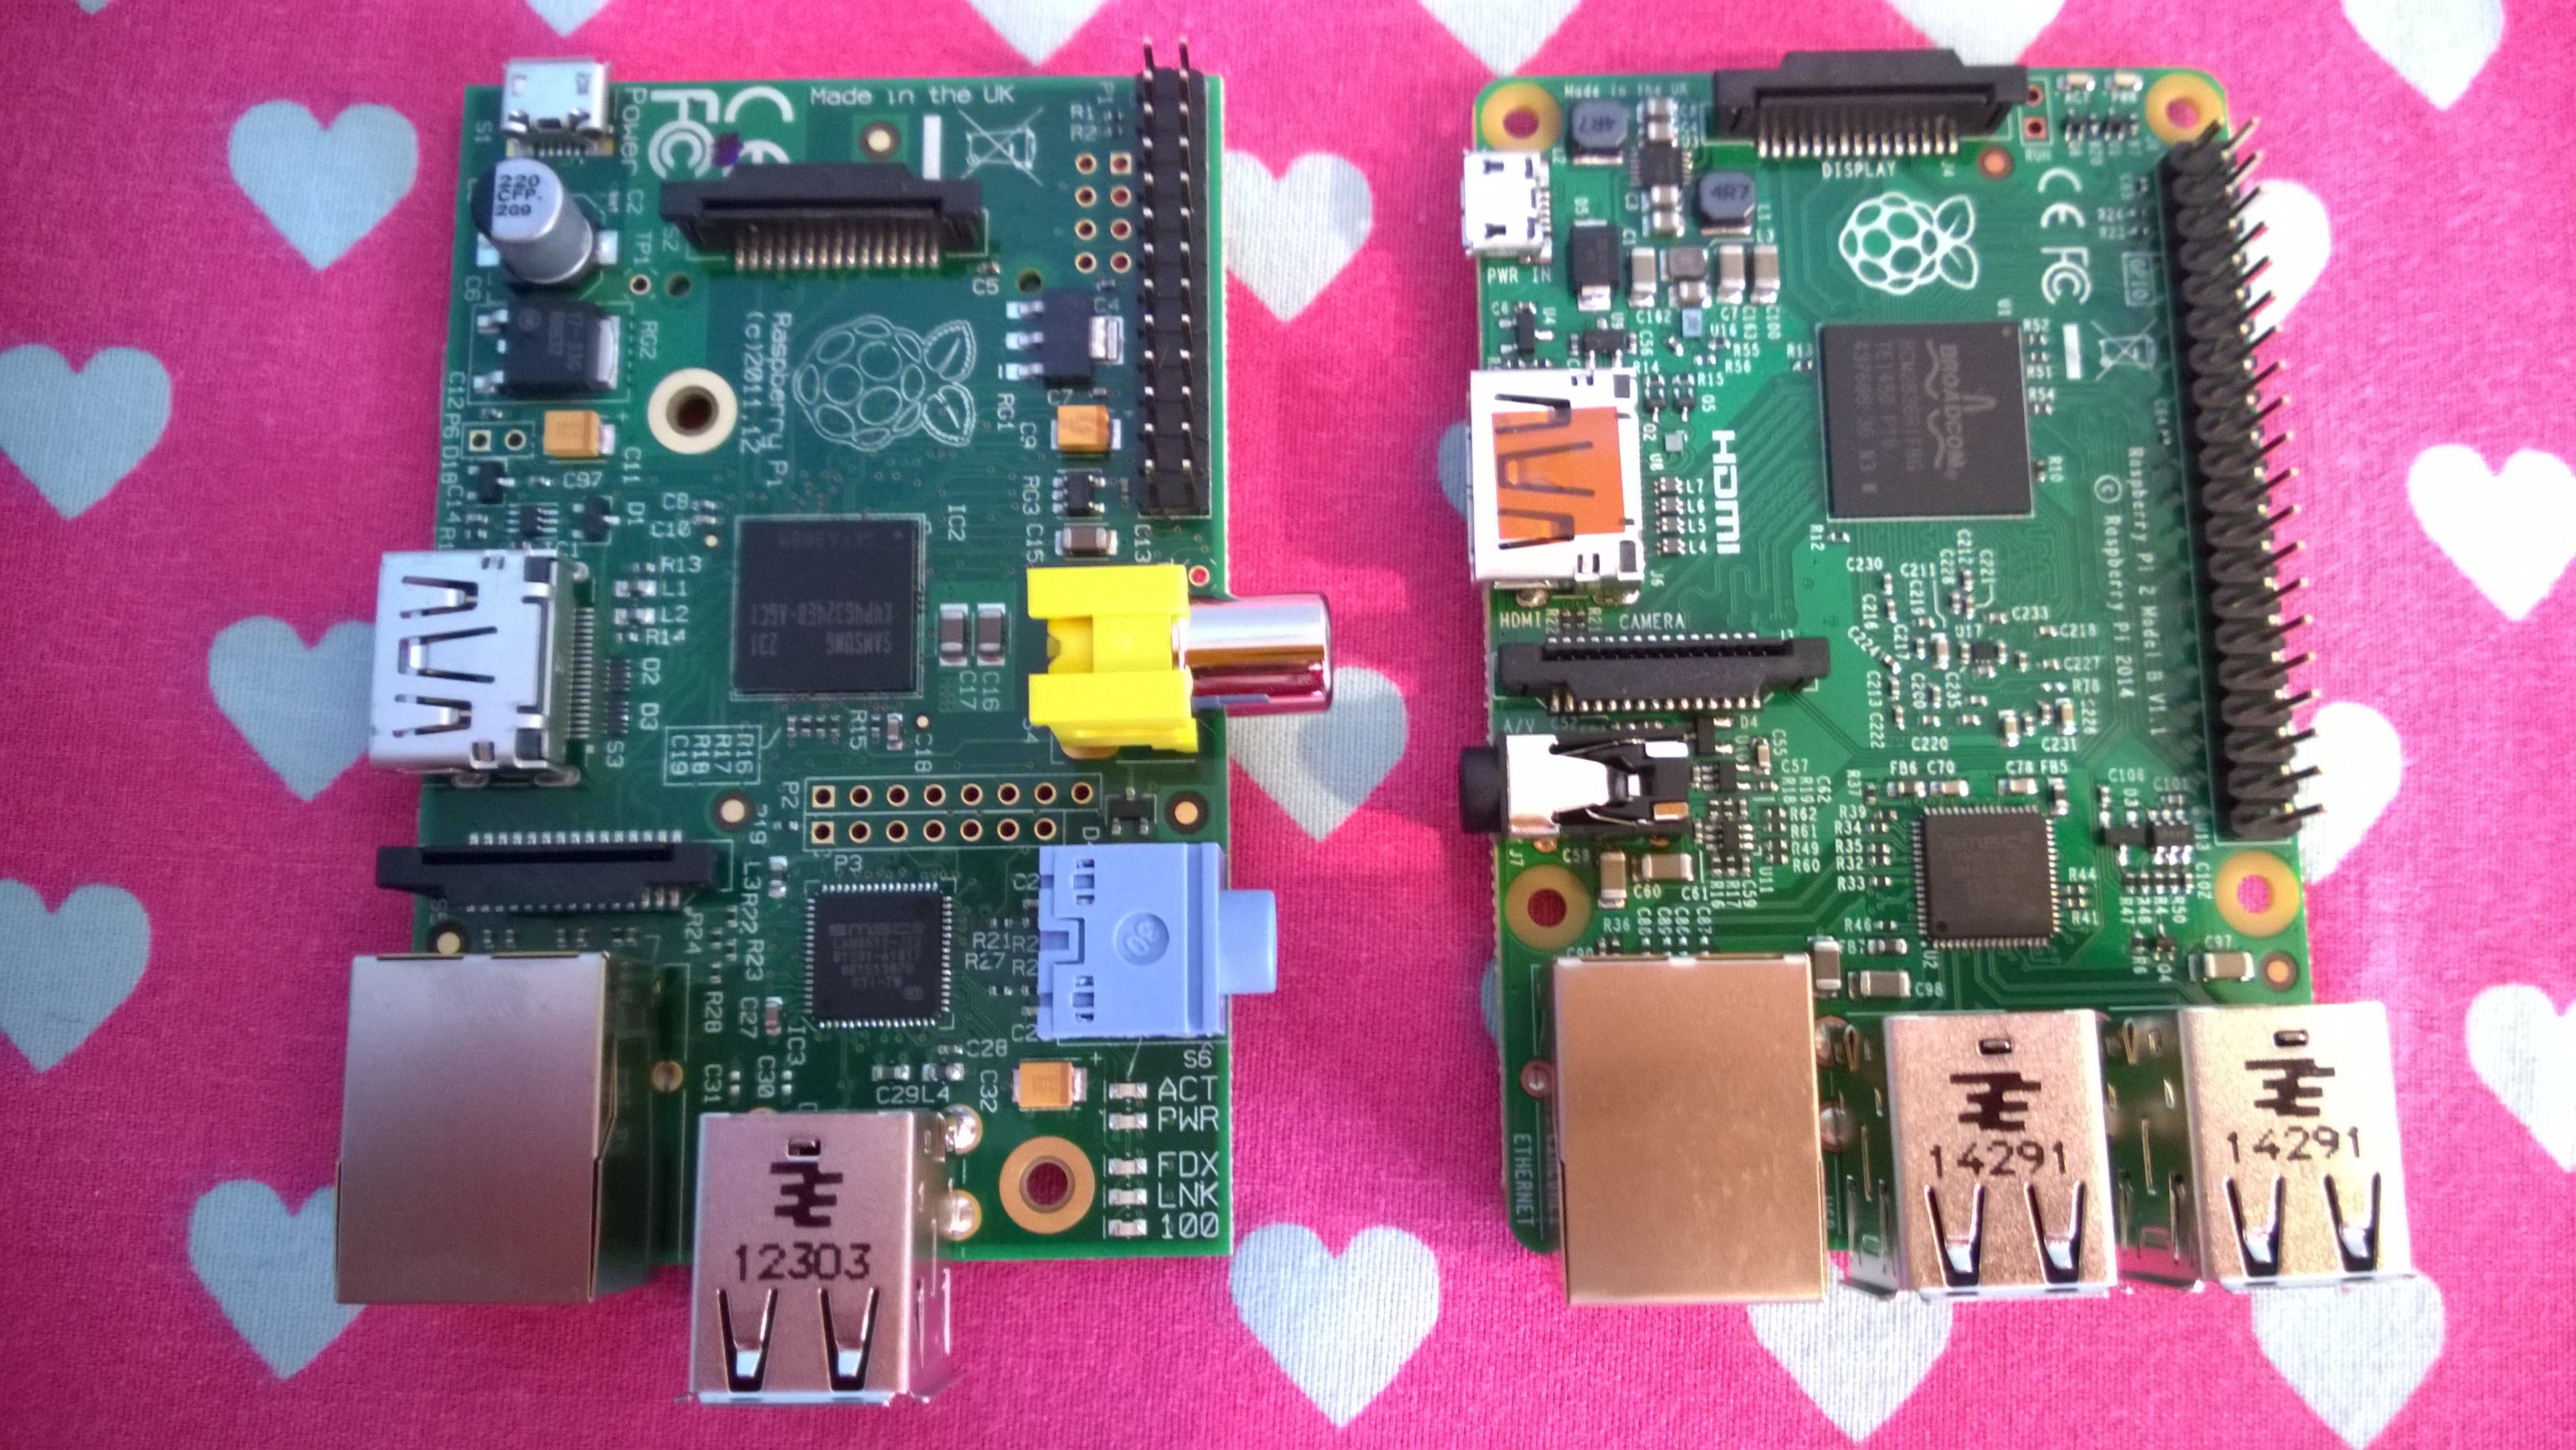 Raspberry Pi 2 Review The Revolutionary 35 Micro Pc Supercharged Model B Circuit Diagram And Top Down